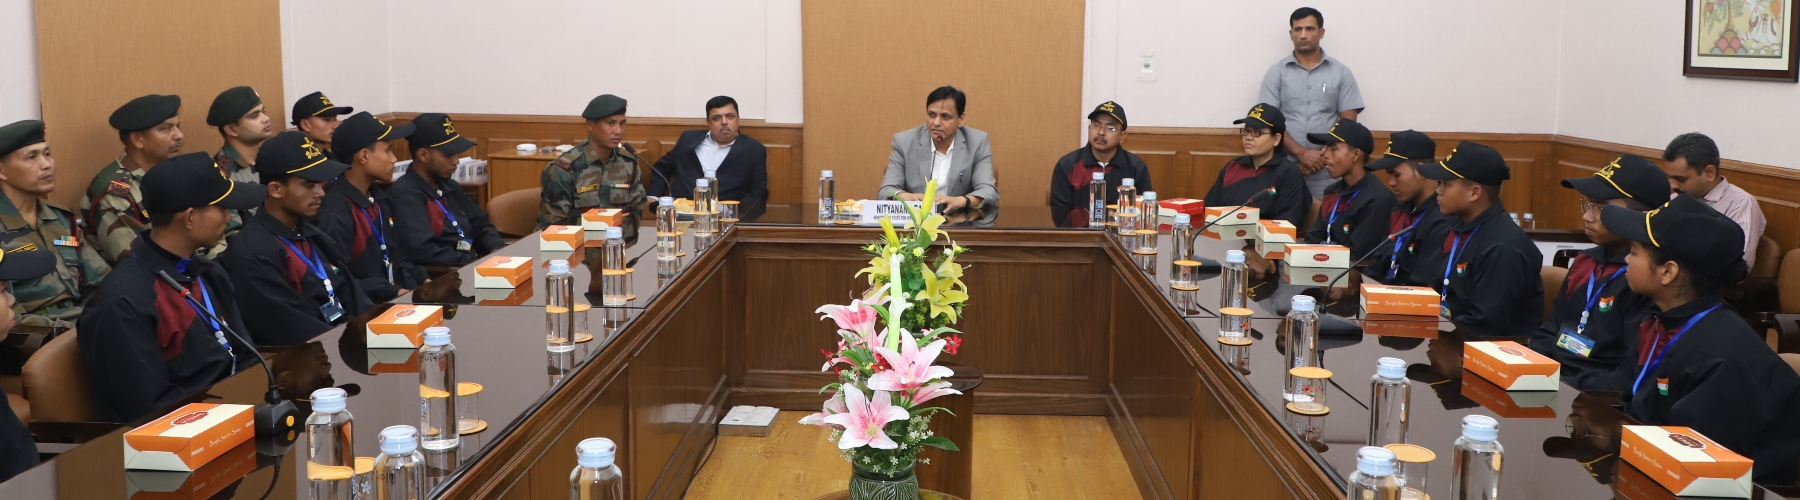 National Integration Tour - Students from Manipur